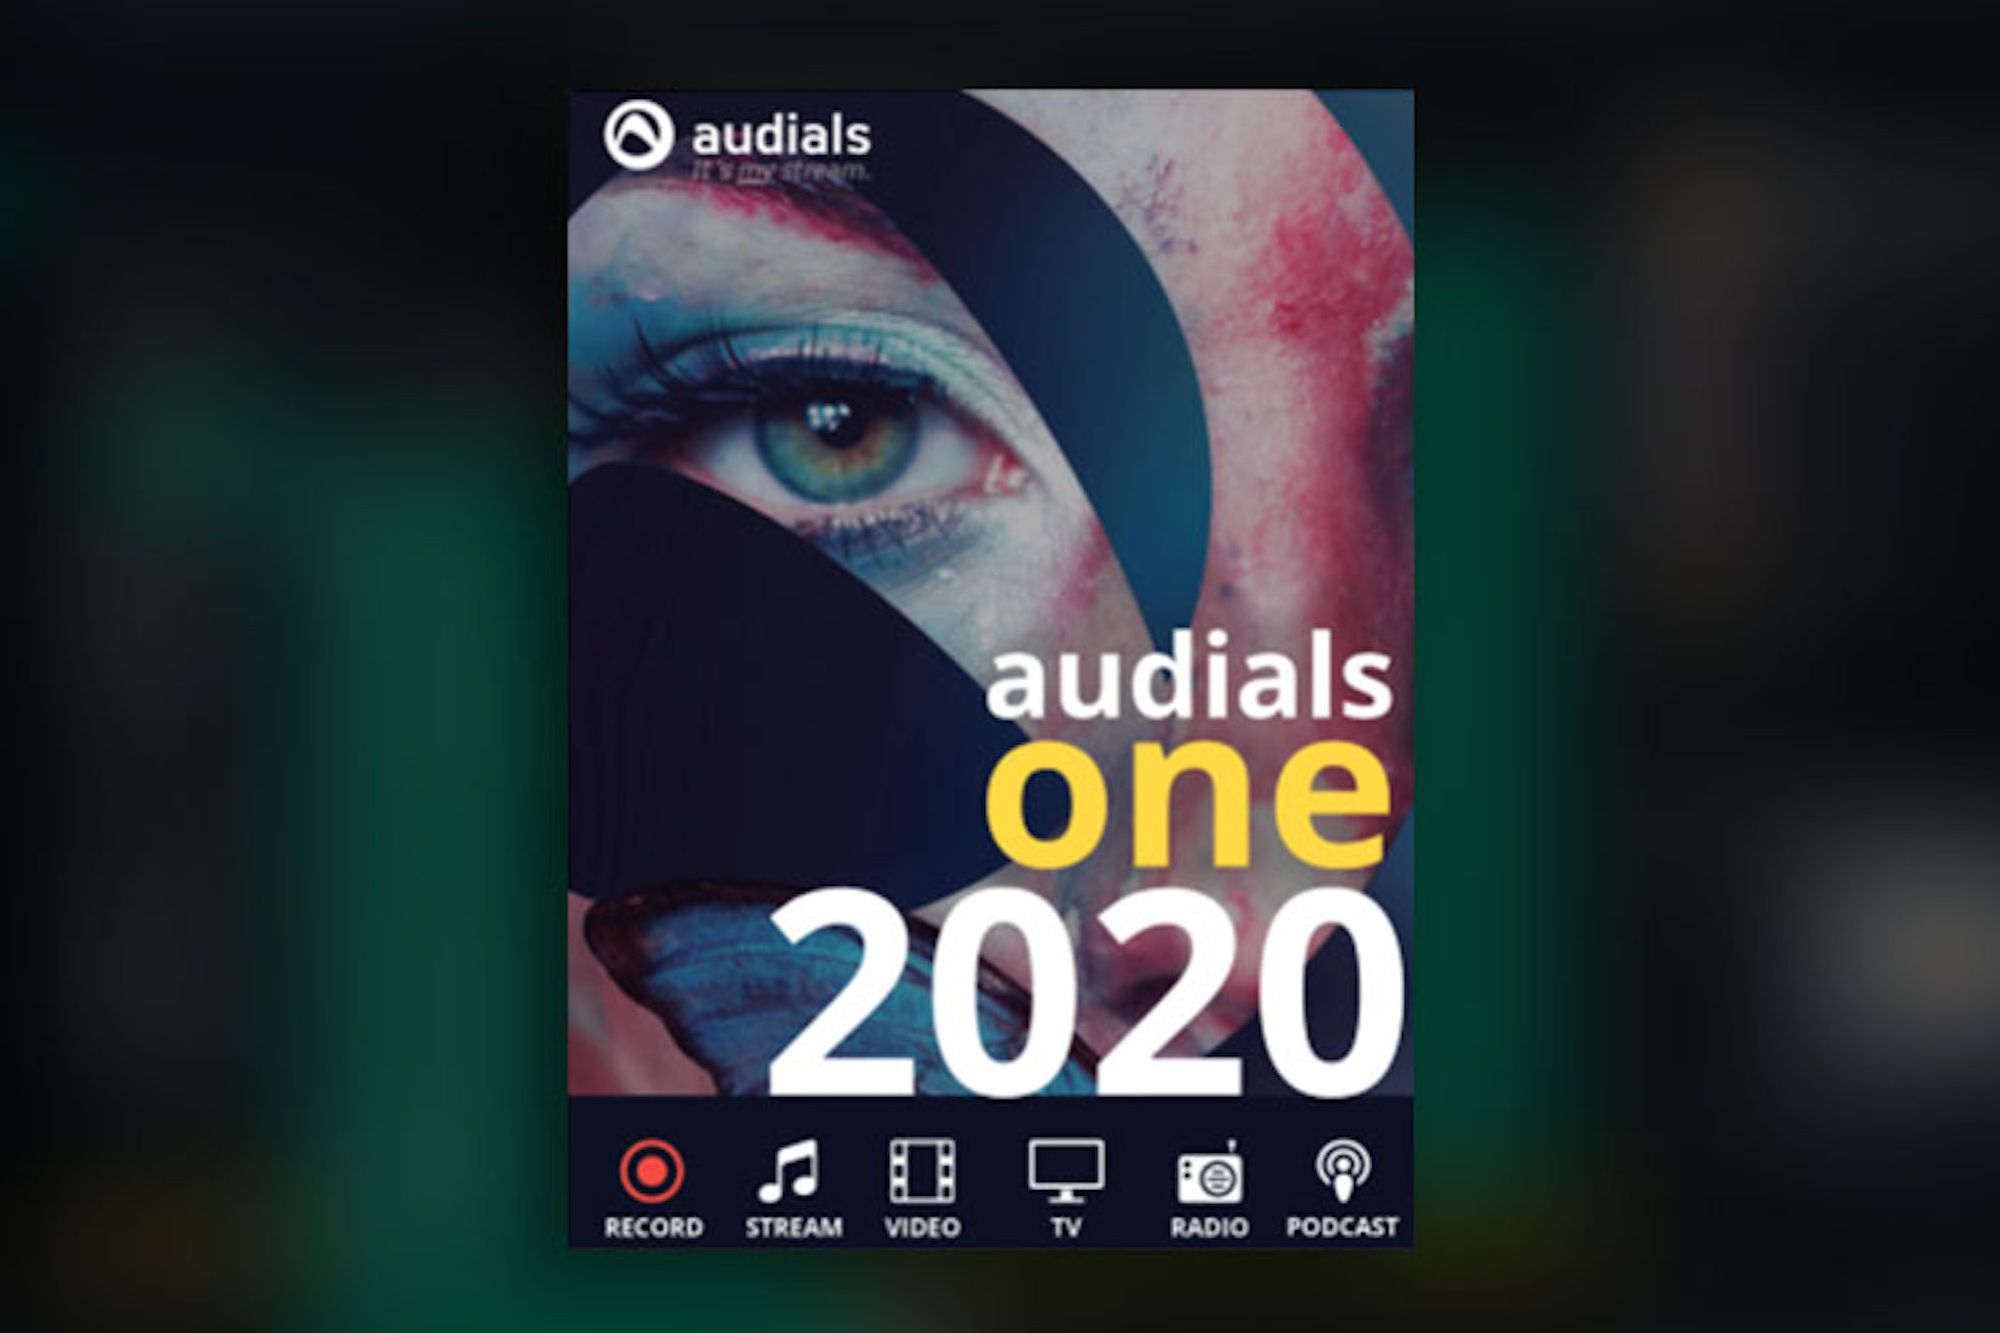 Listen to Everything You Love Offline with Audials One 2020